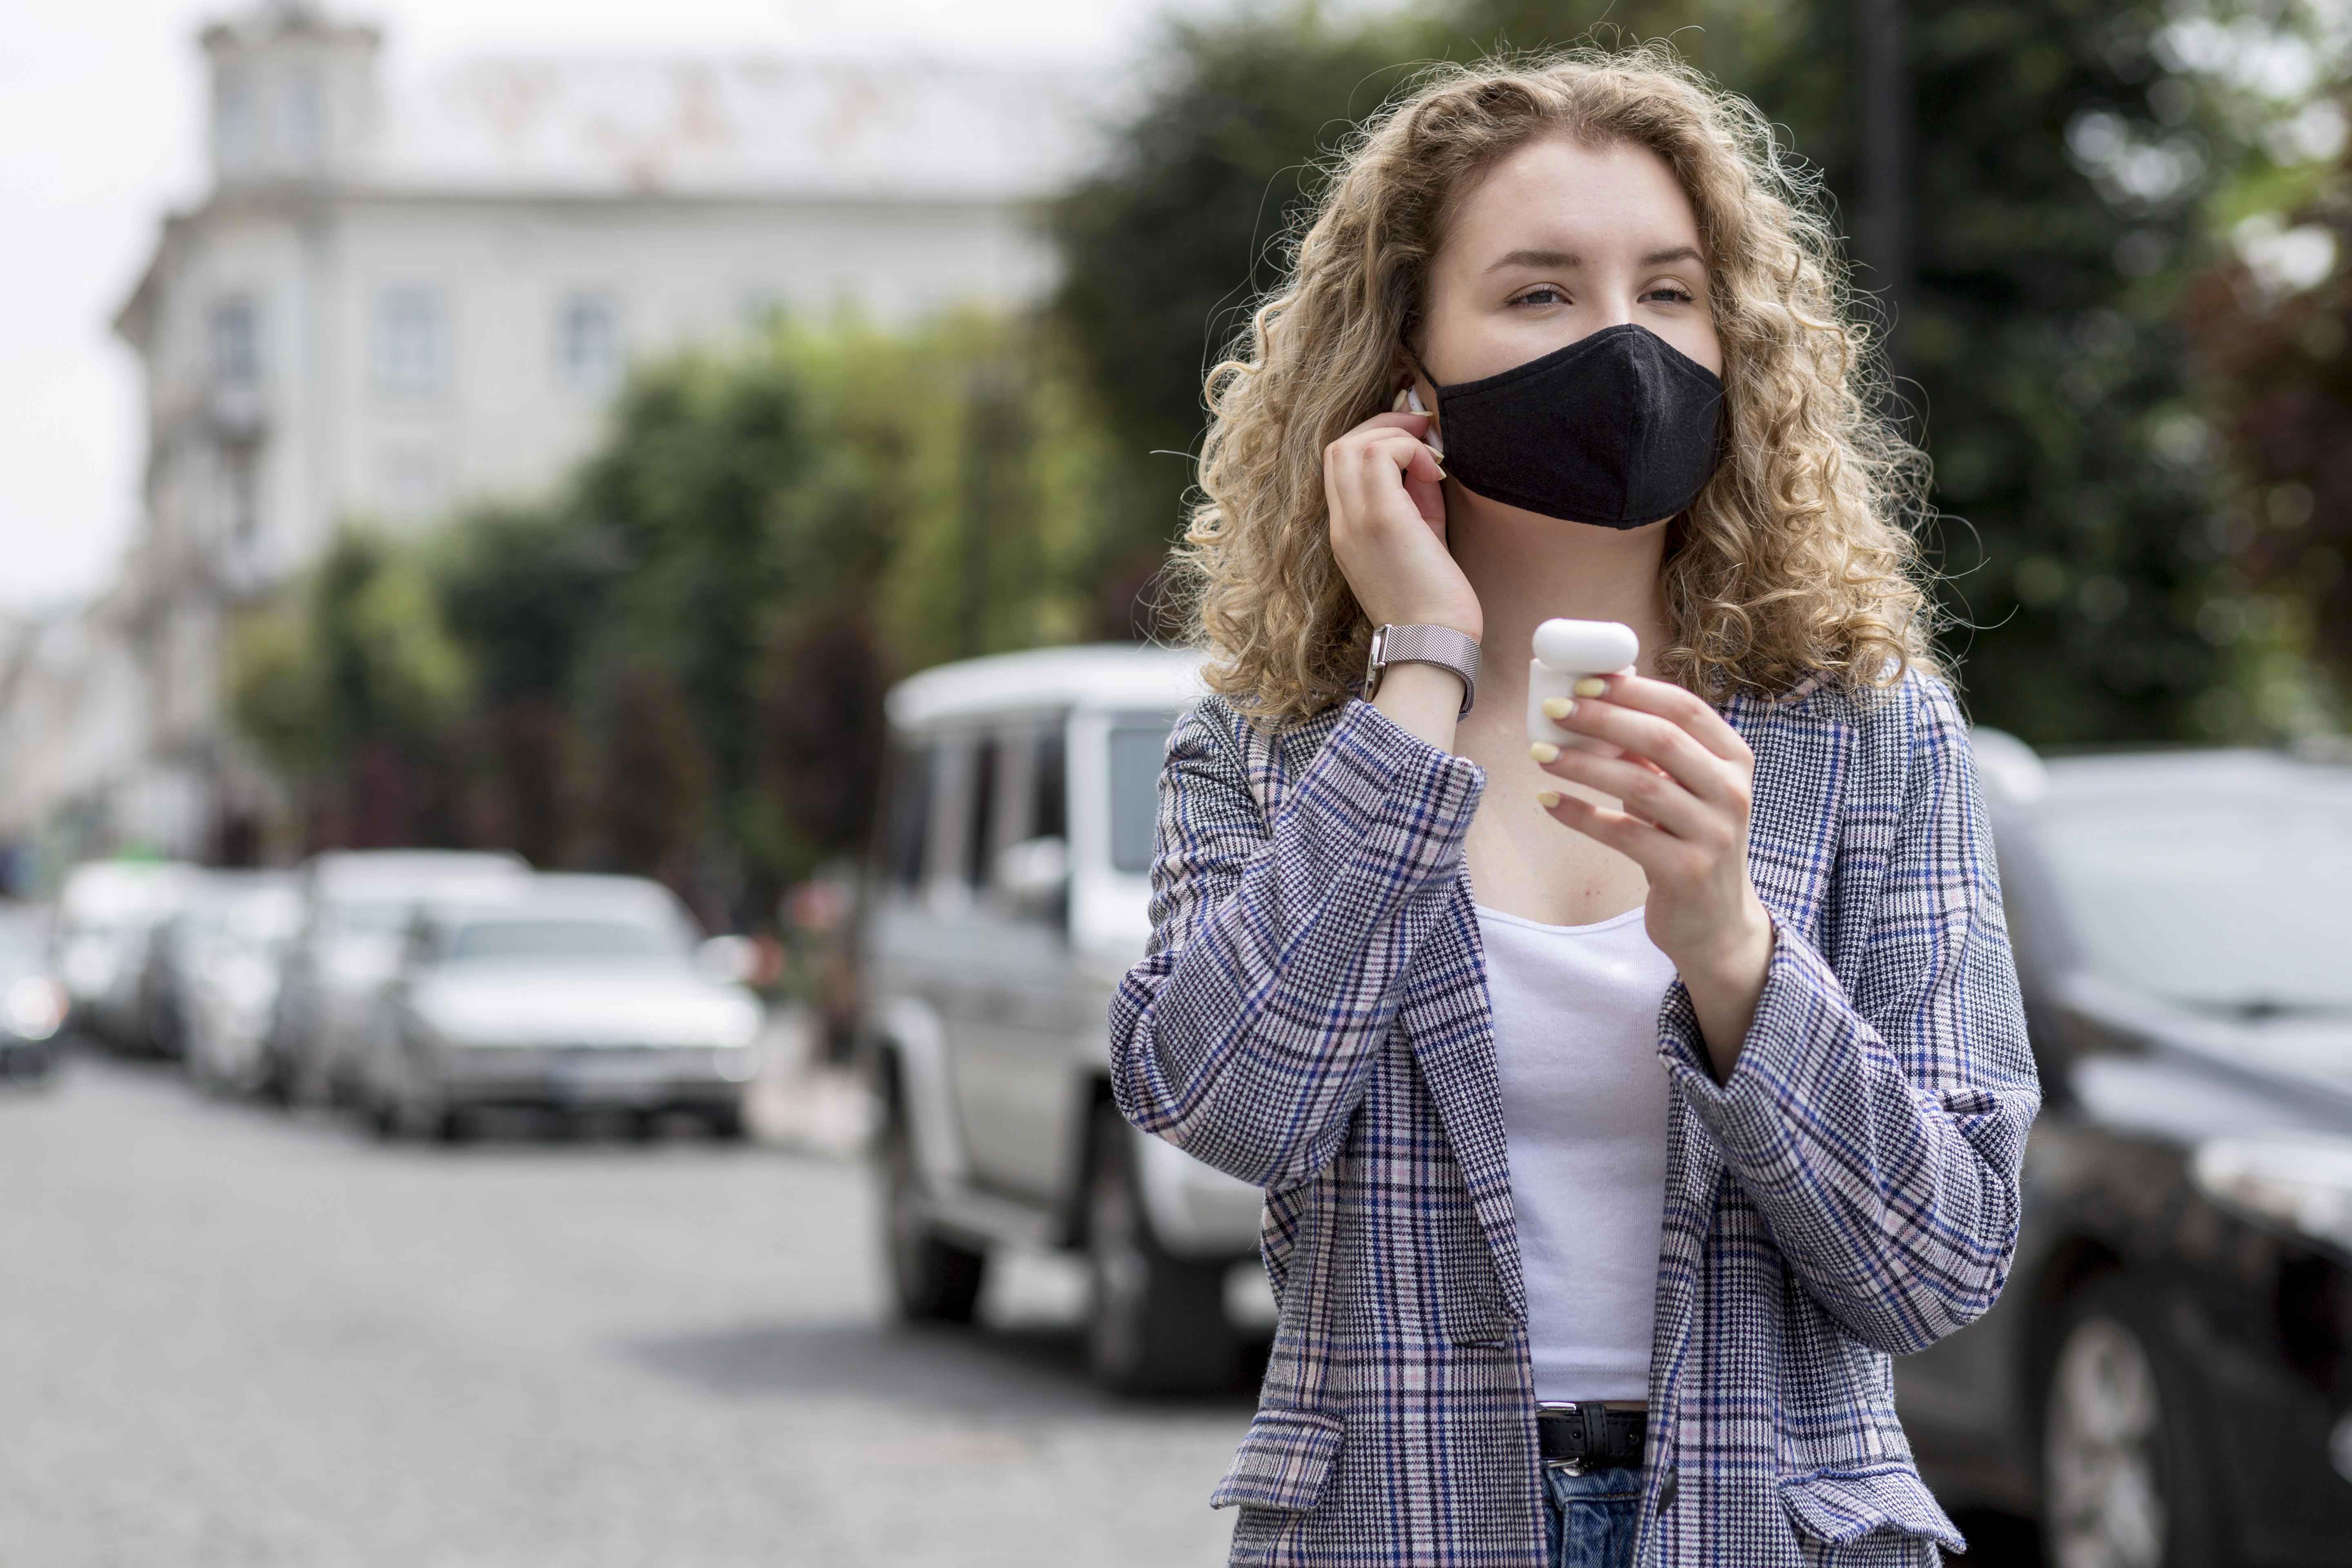 woman-with-mask-outdoor-with-airpods.jpg